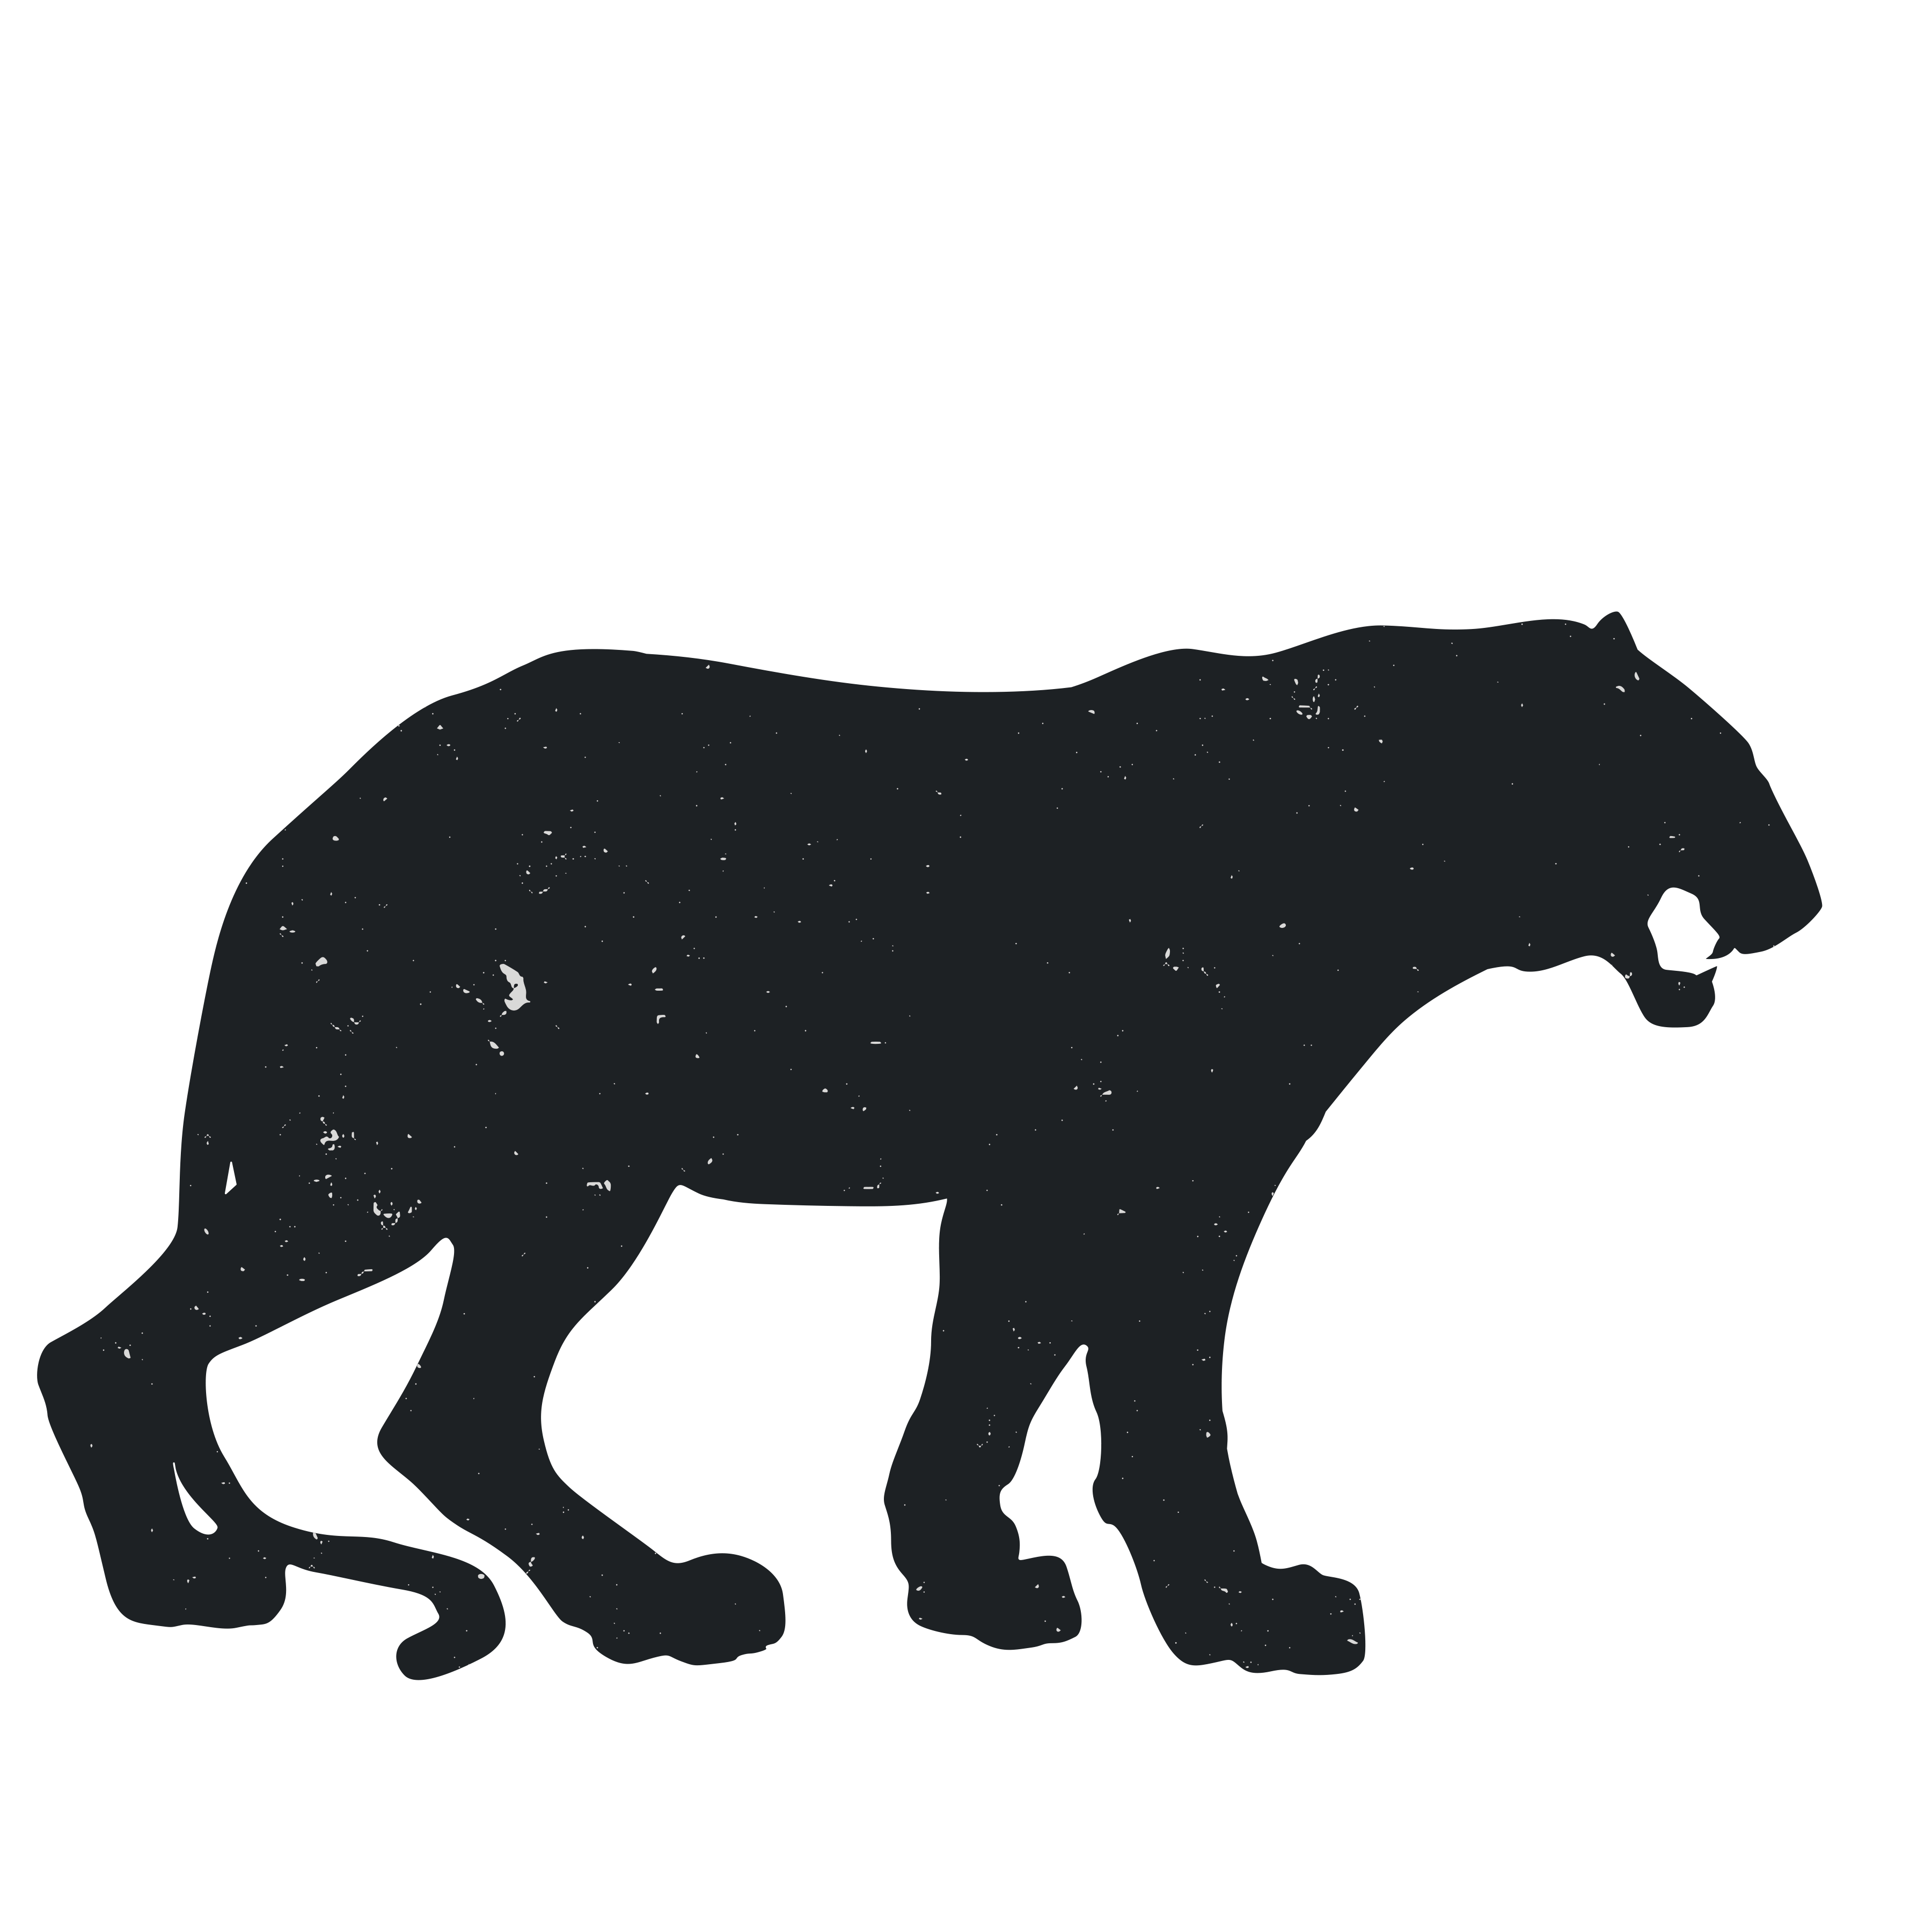 3600x3600 Baby Tigers Bengal Tiger Silhouette Clip Art